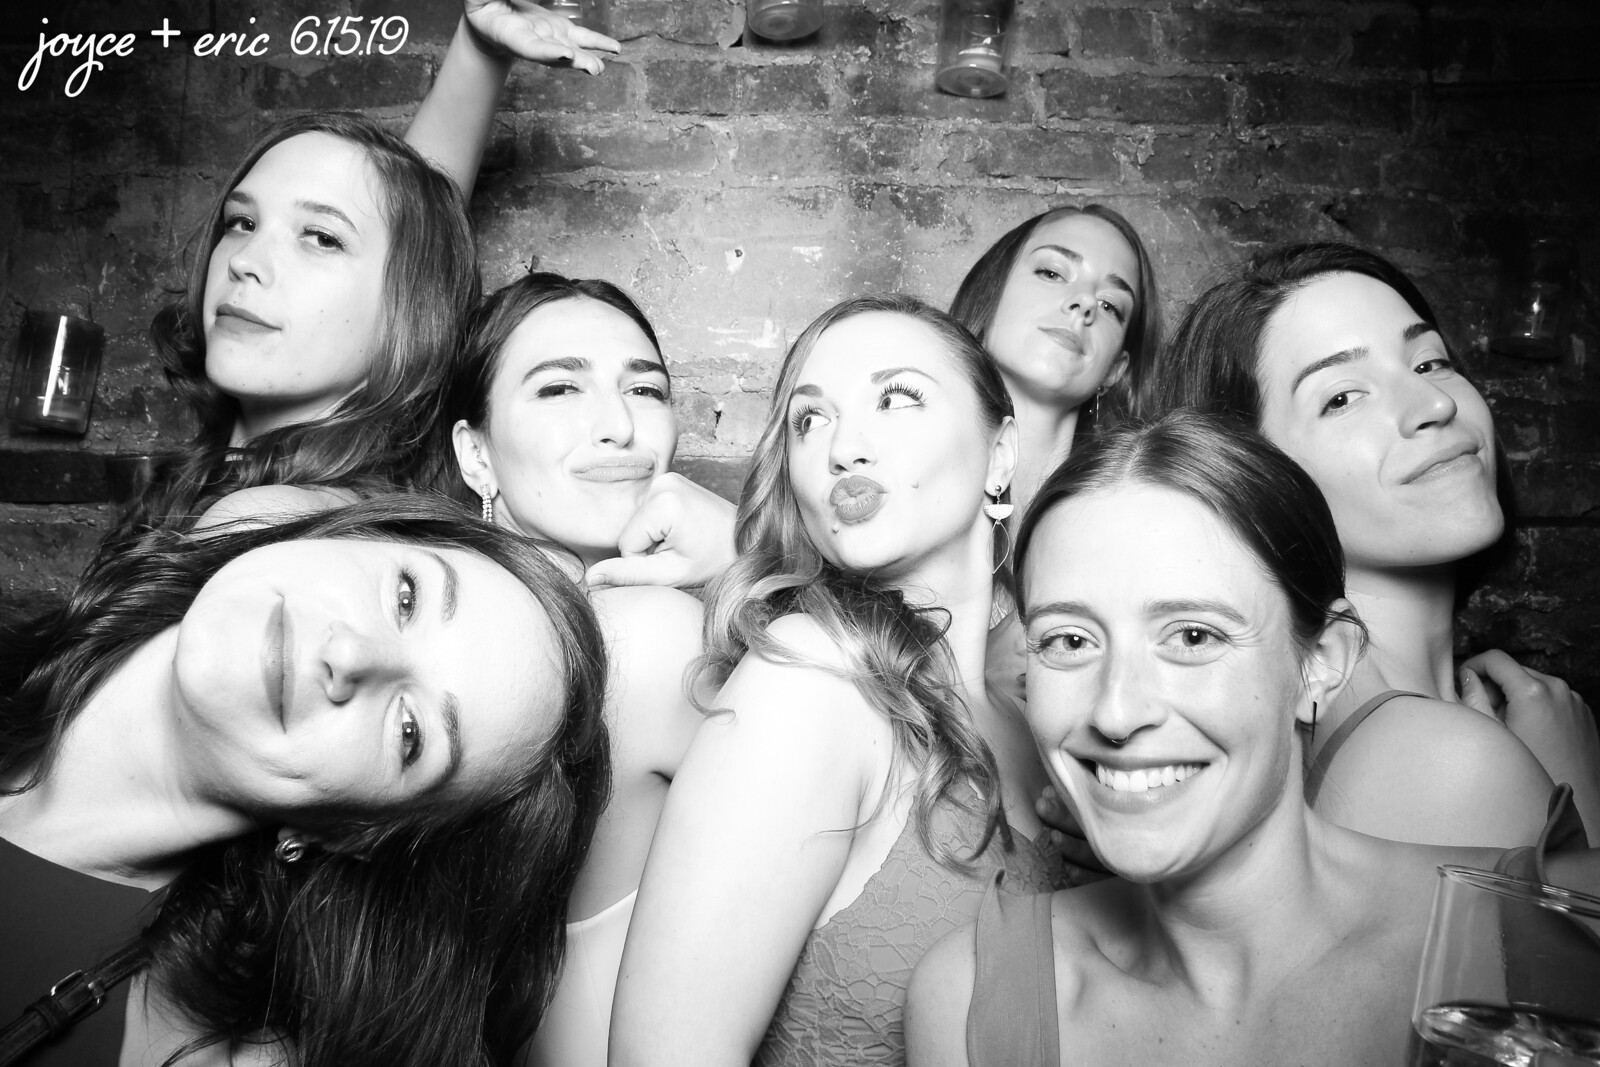 Chicago_Vintage_Wedding_Photobooth_New_Leaf_04.jpg